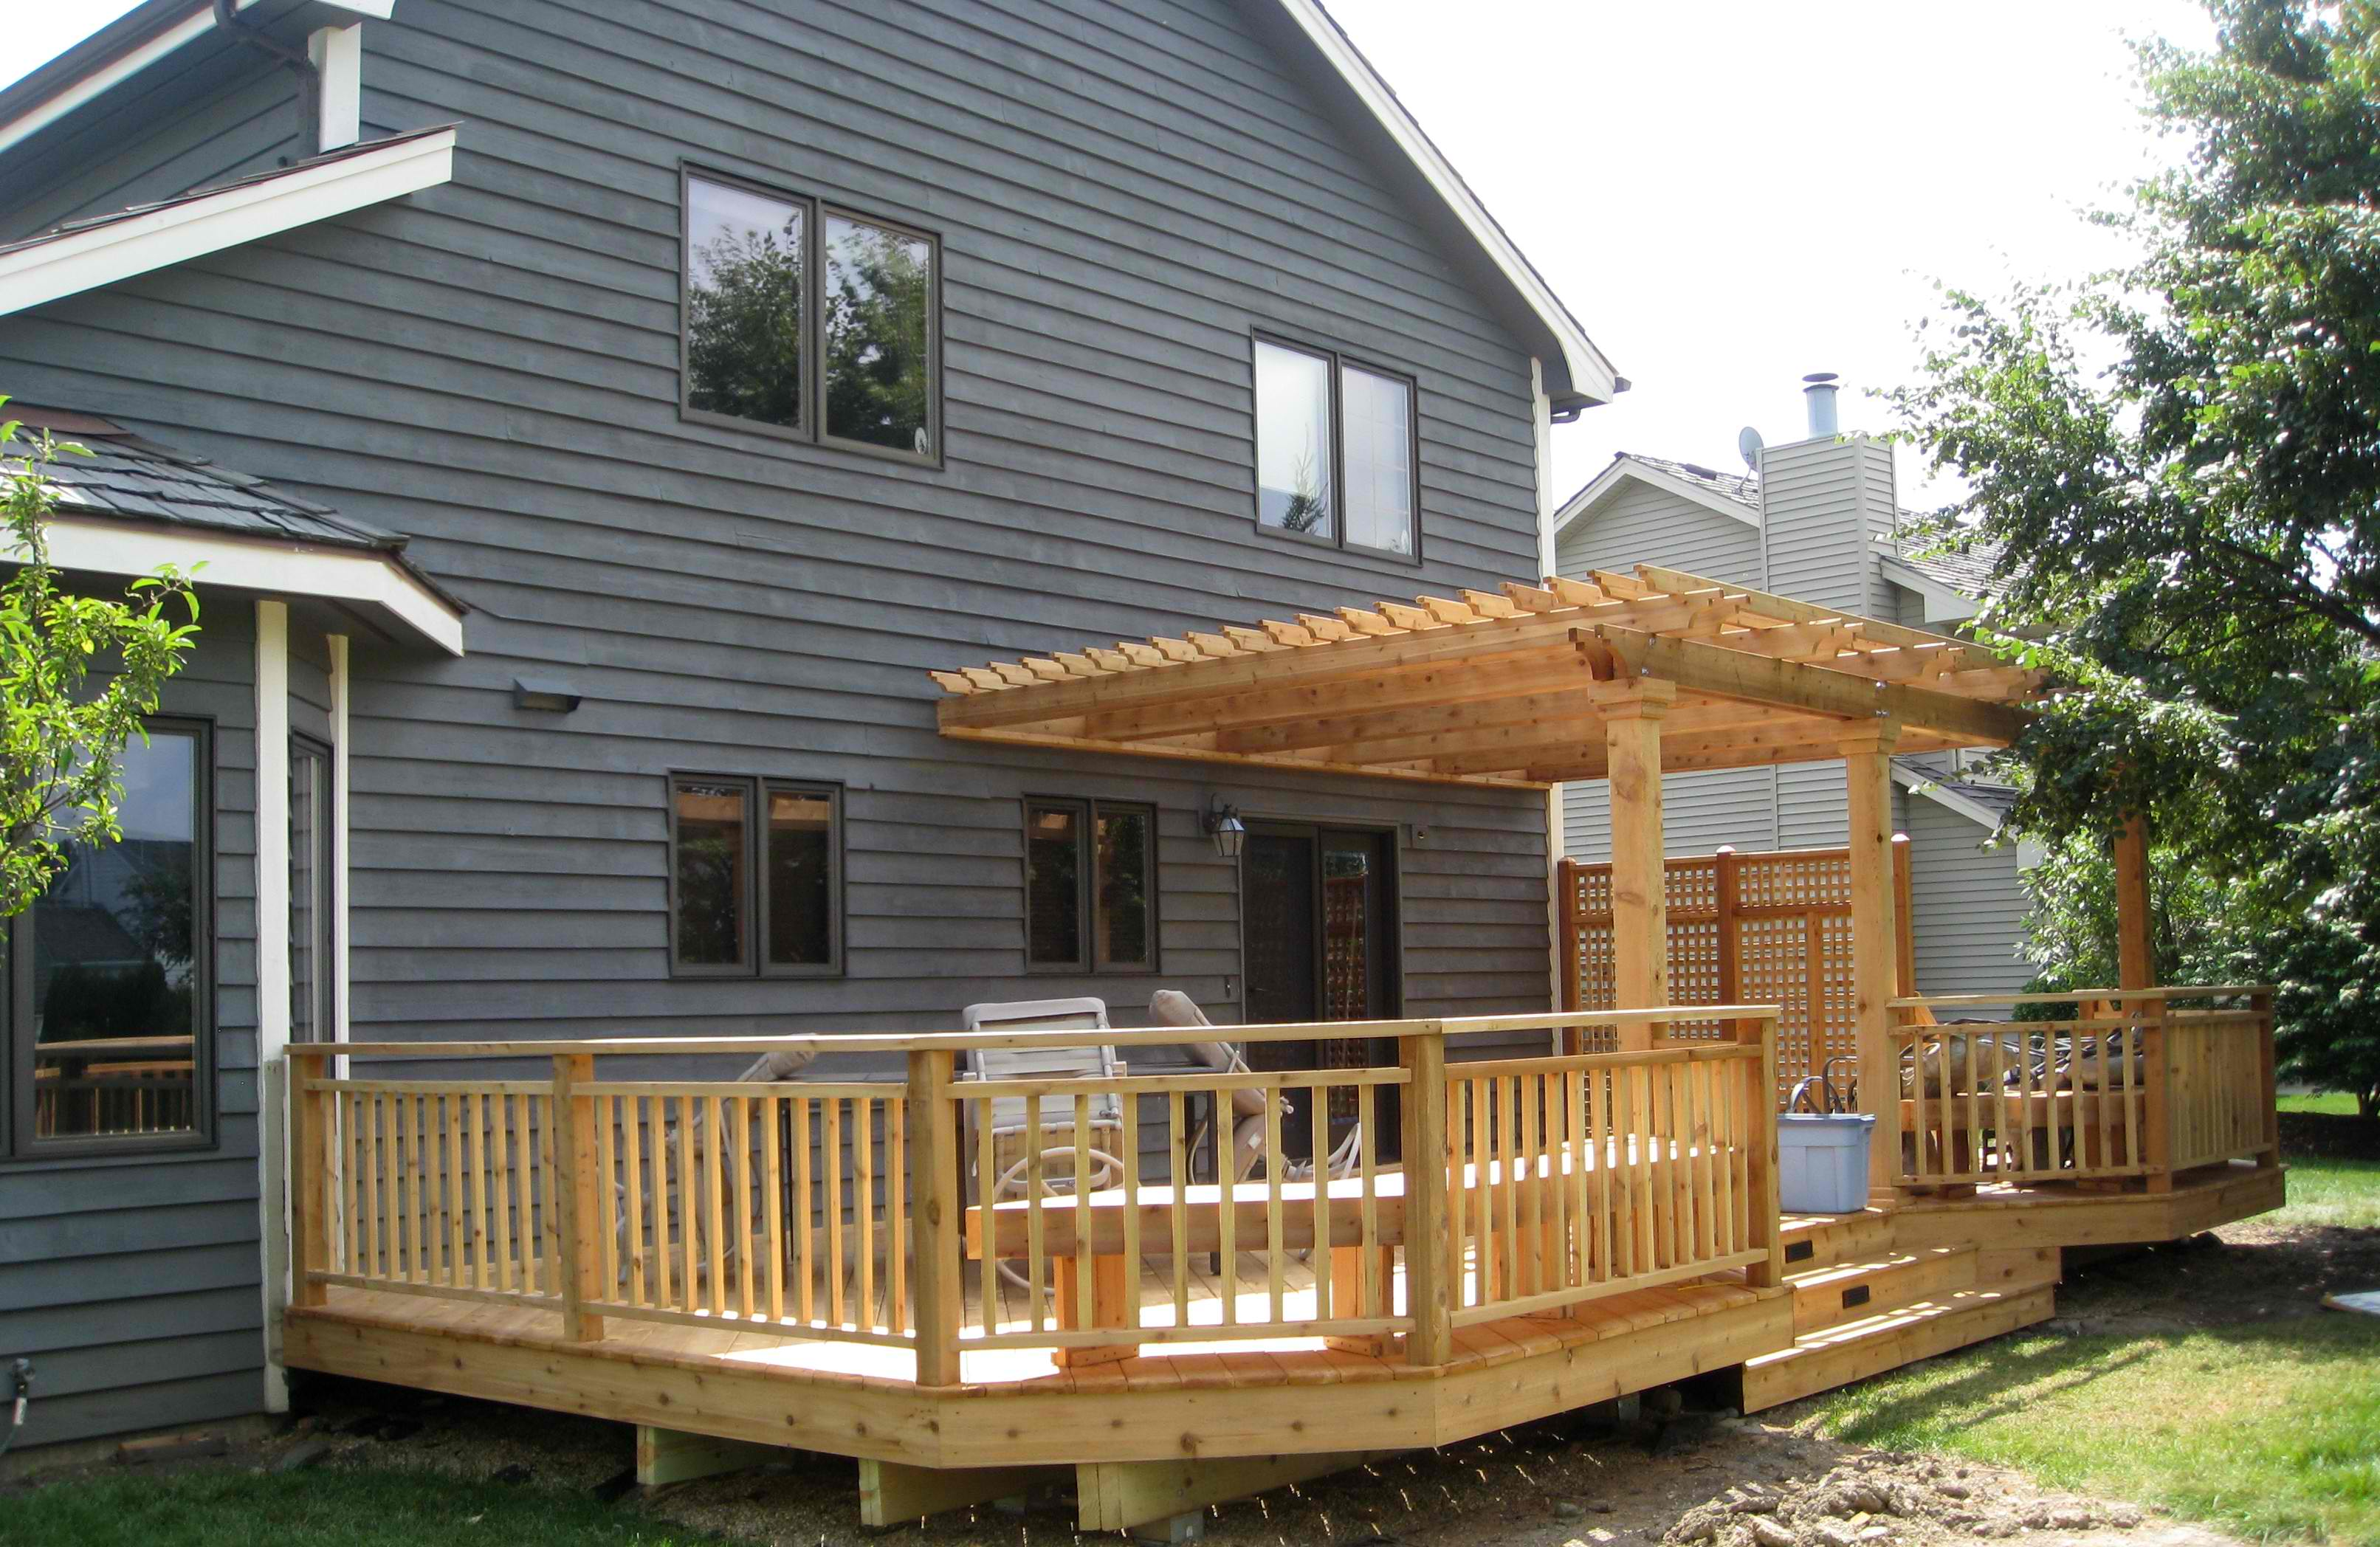 Decks & Light Construction Projects | Winston Salem ... on Patio With Deck Ideas id=52768